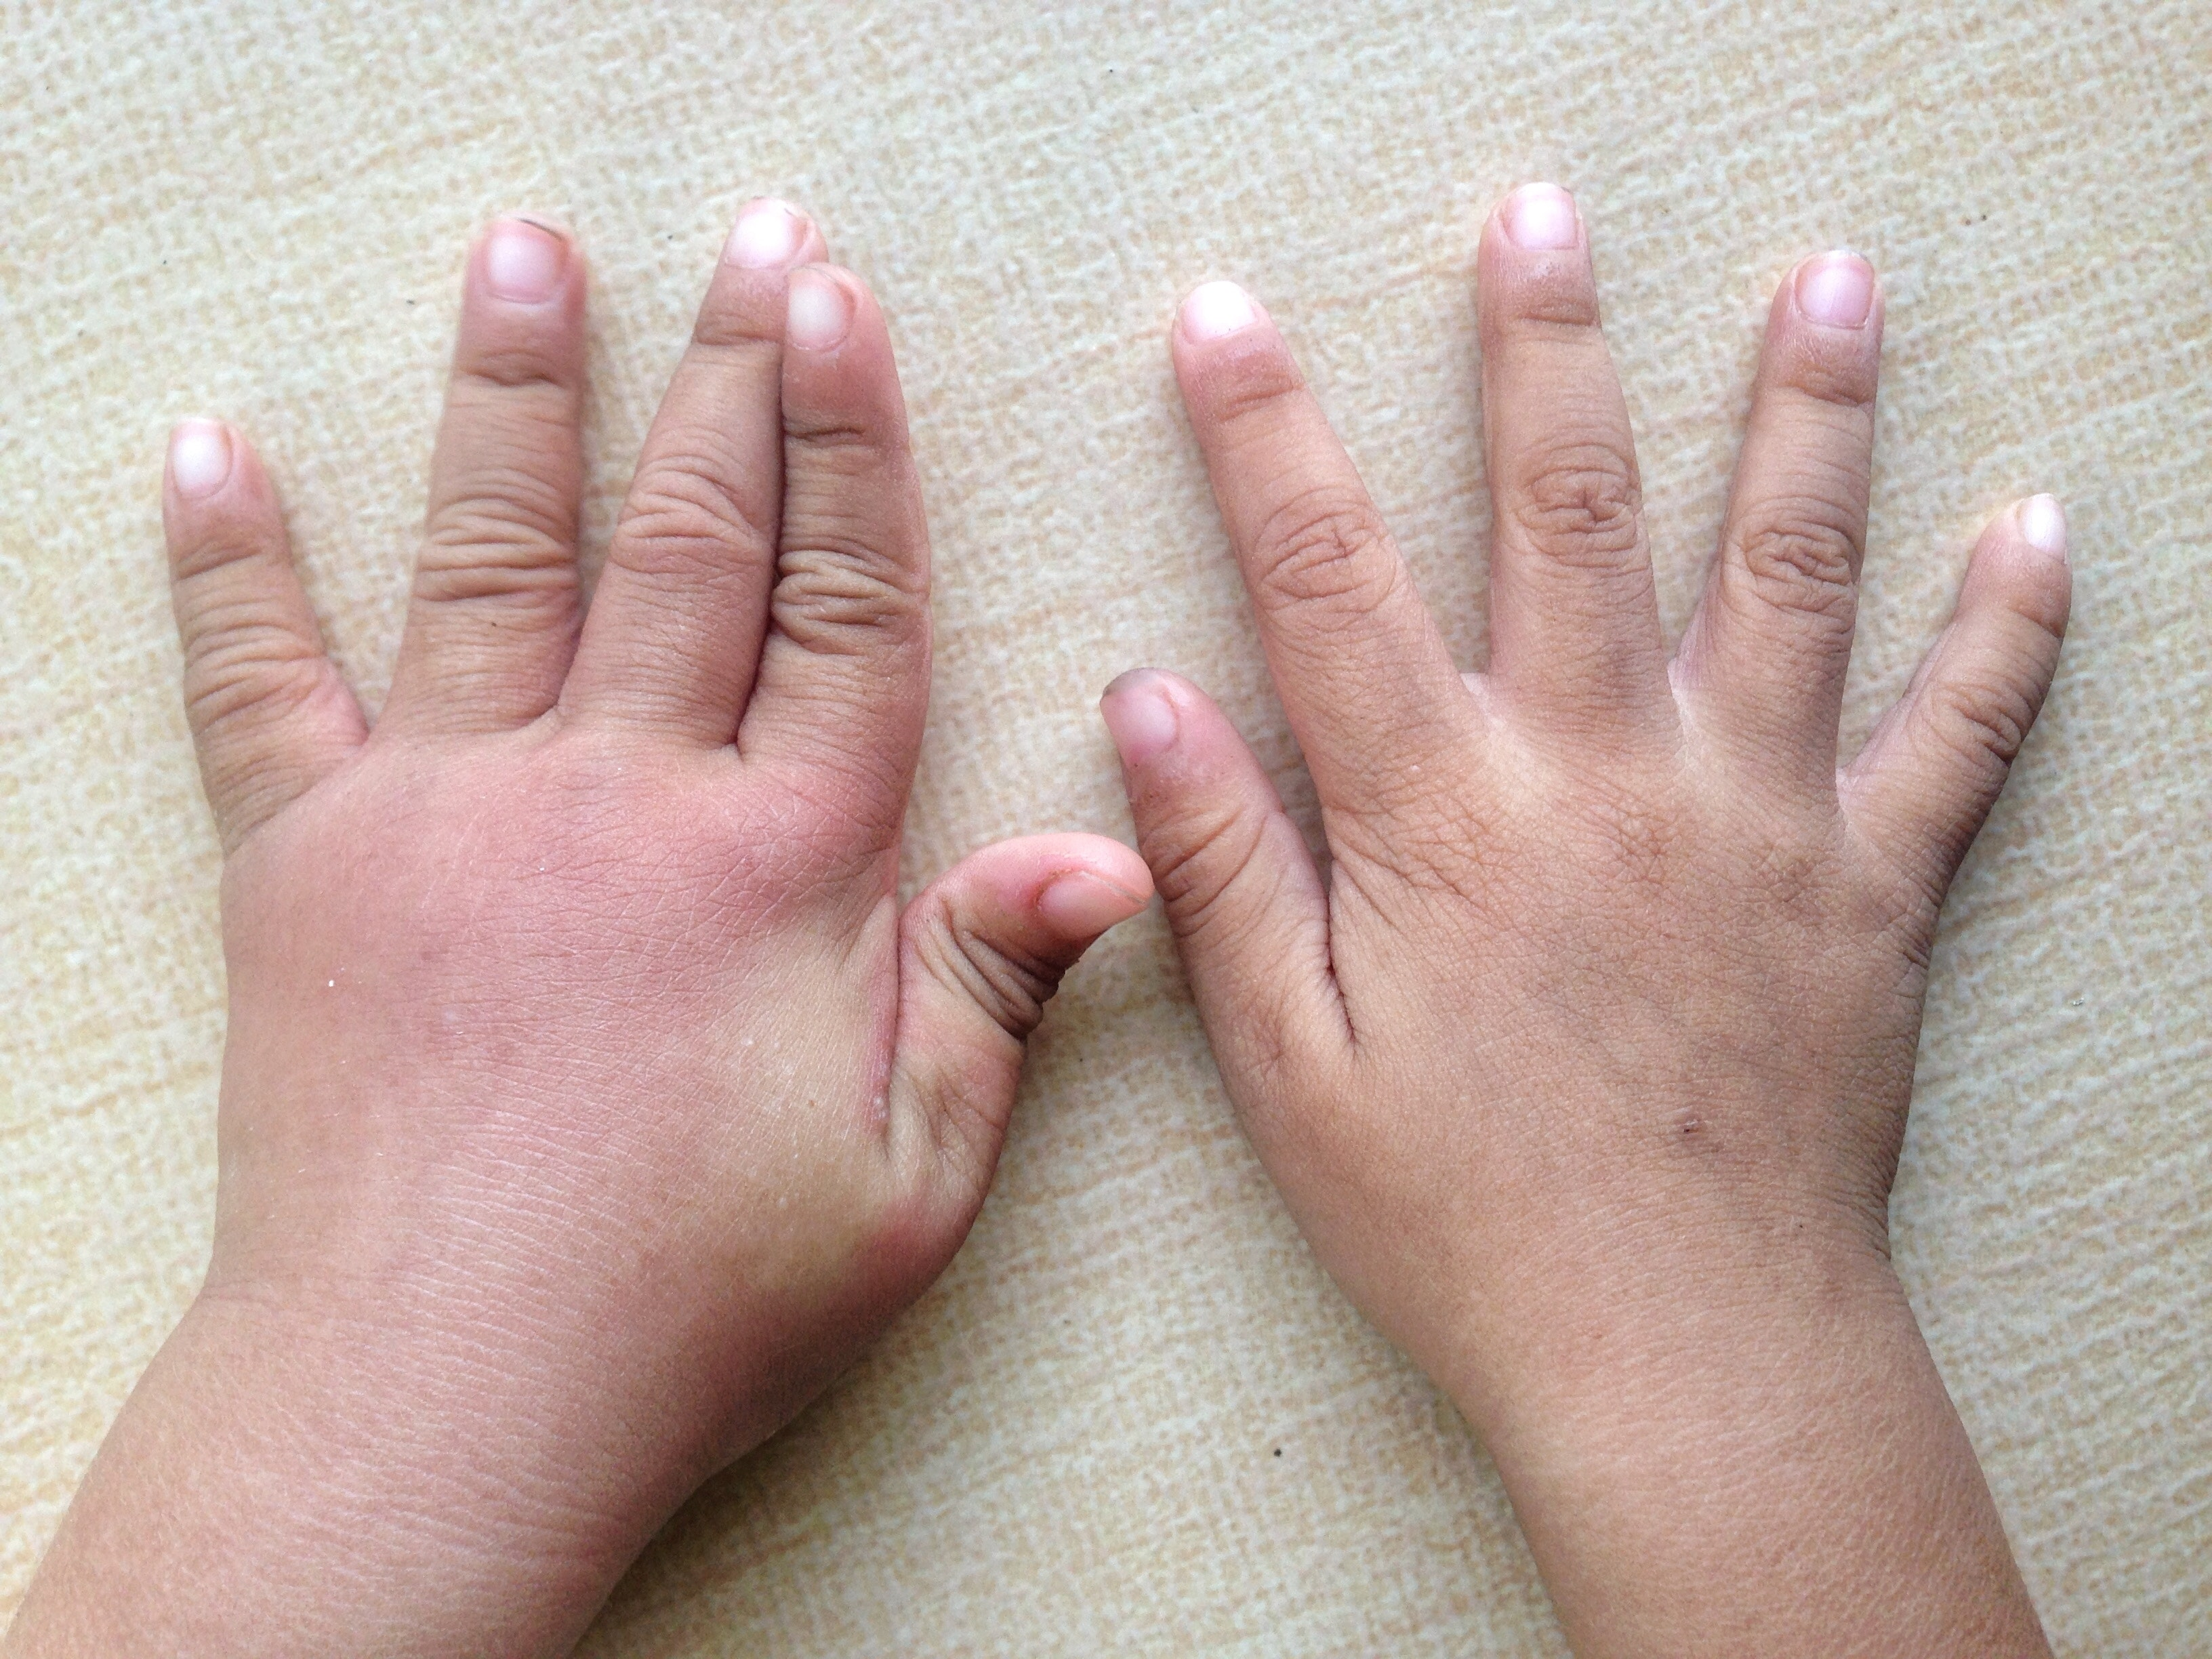 An image depicting a person suffering from swelling of both hands symptoms